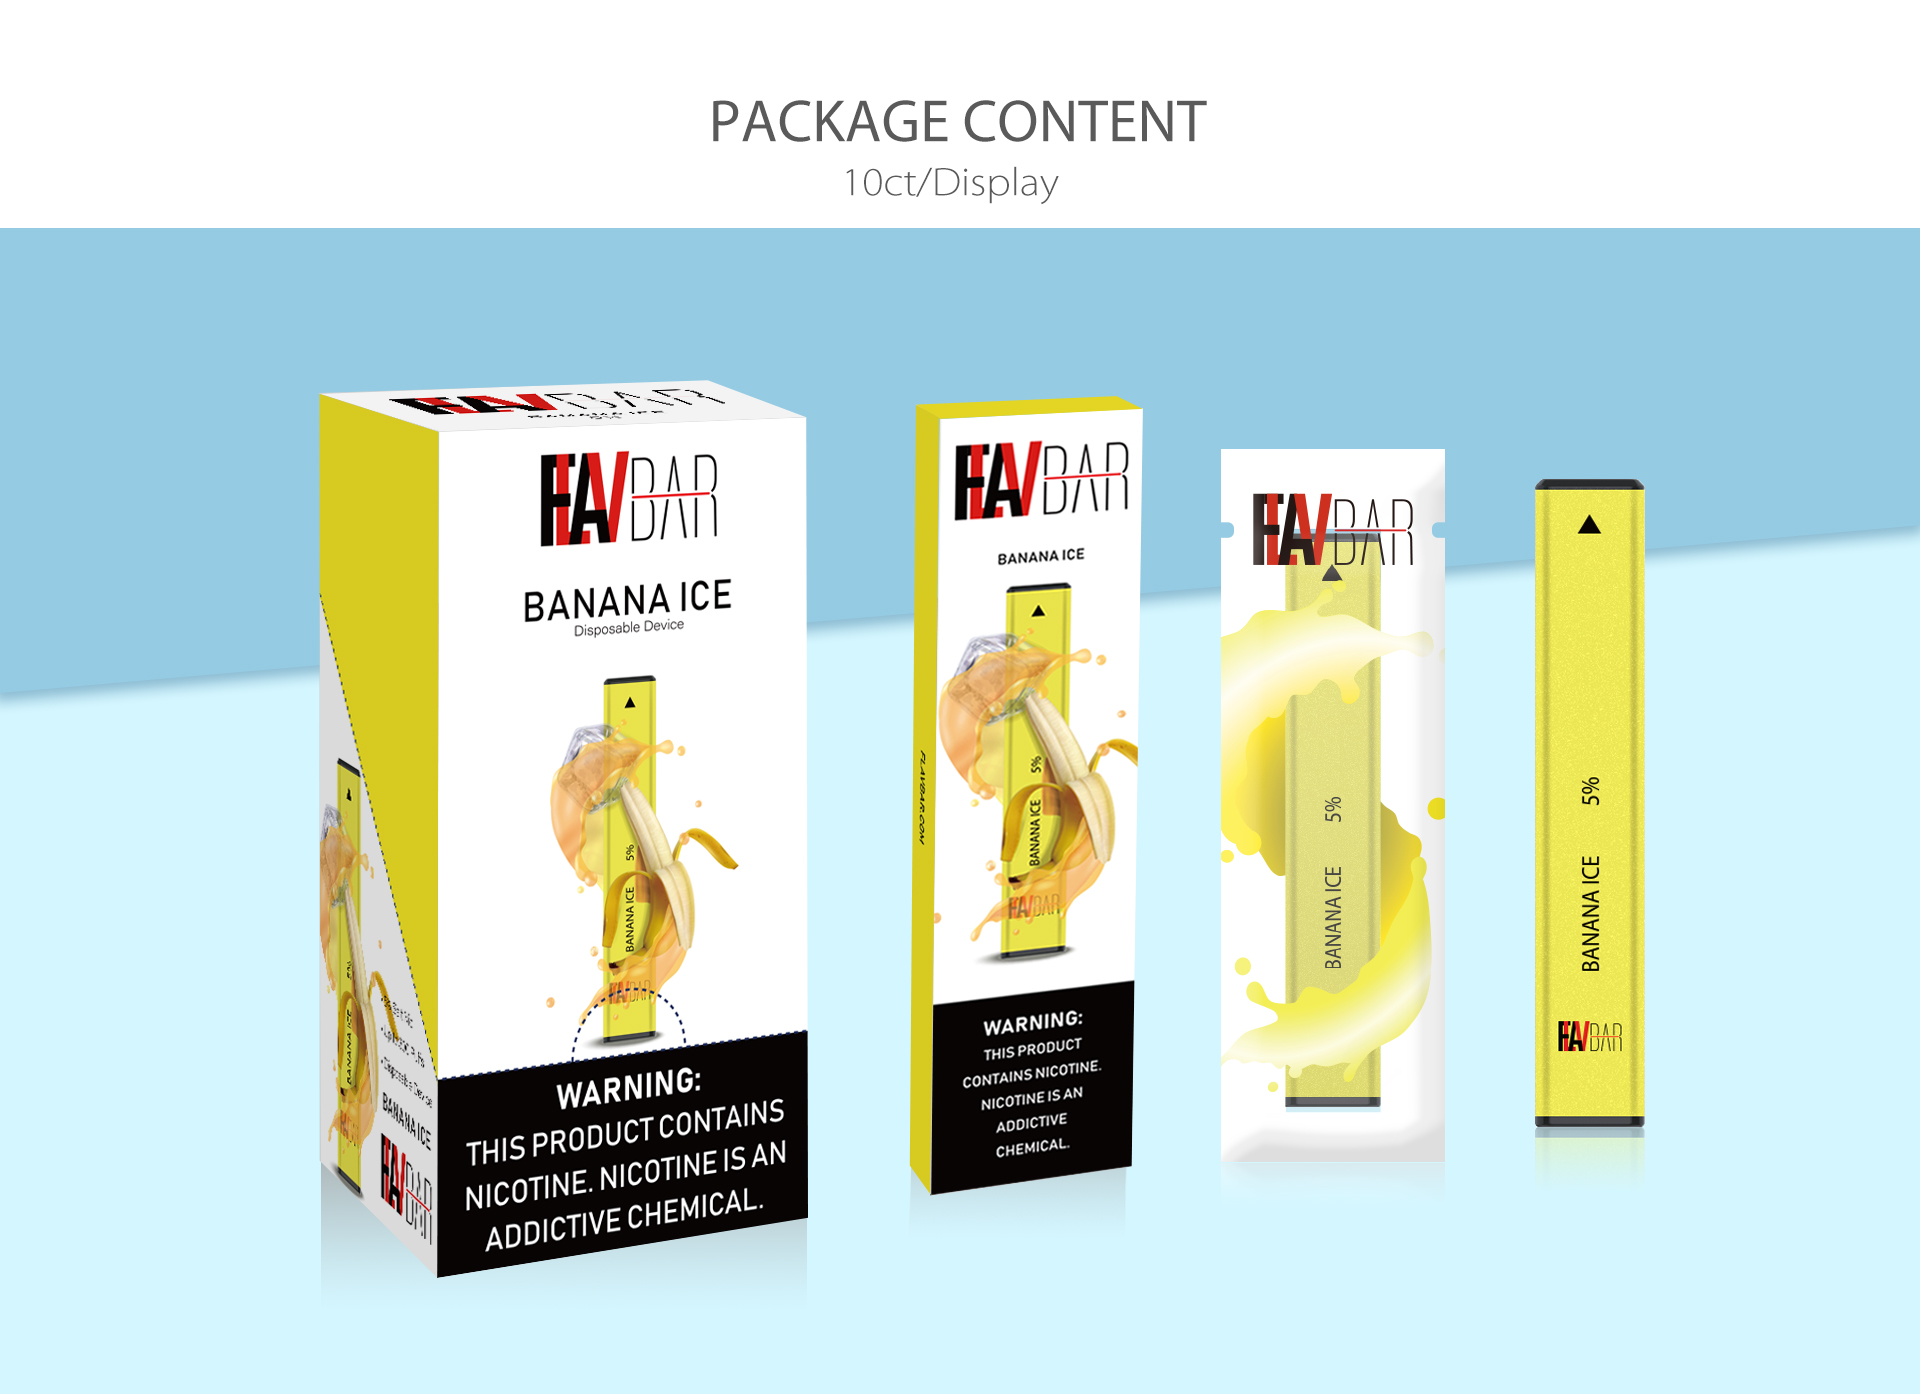 Flavbar v1 pod disposable device package content.